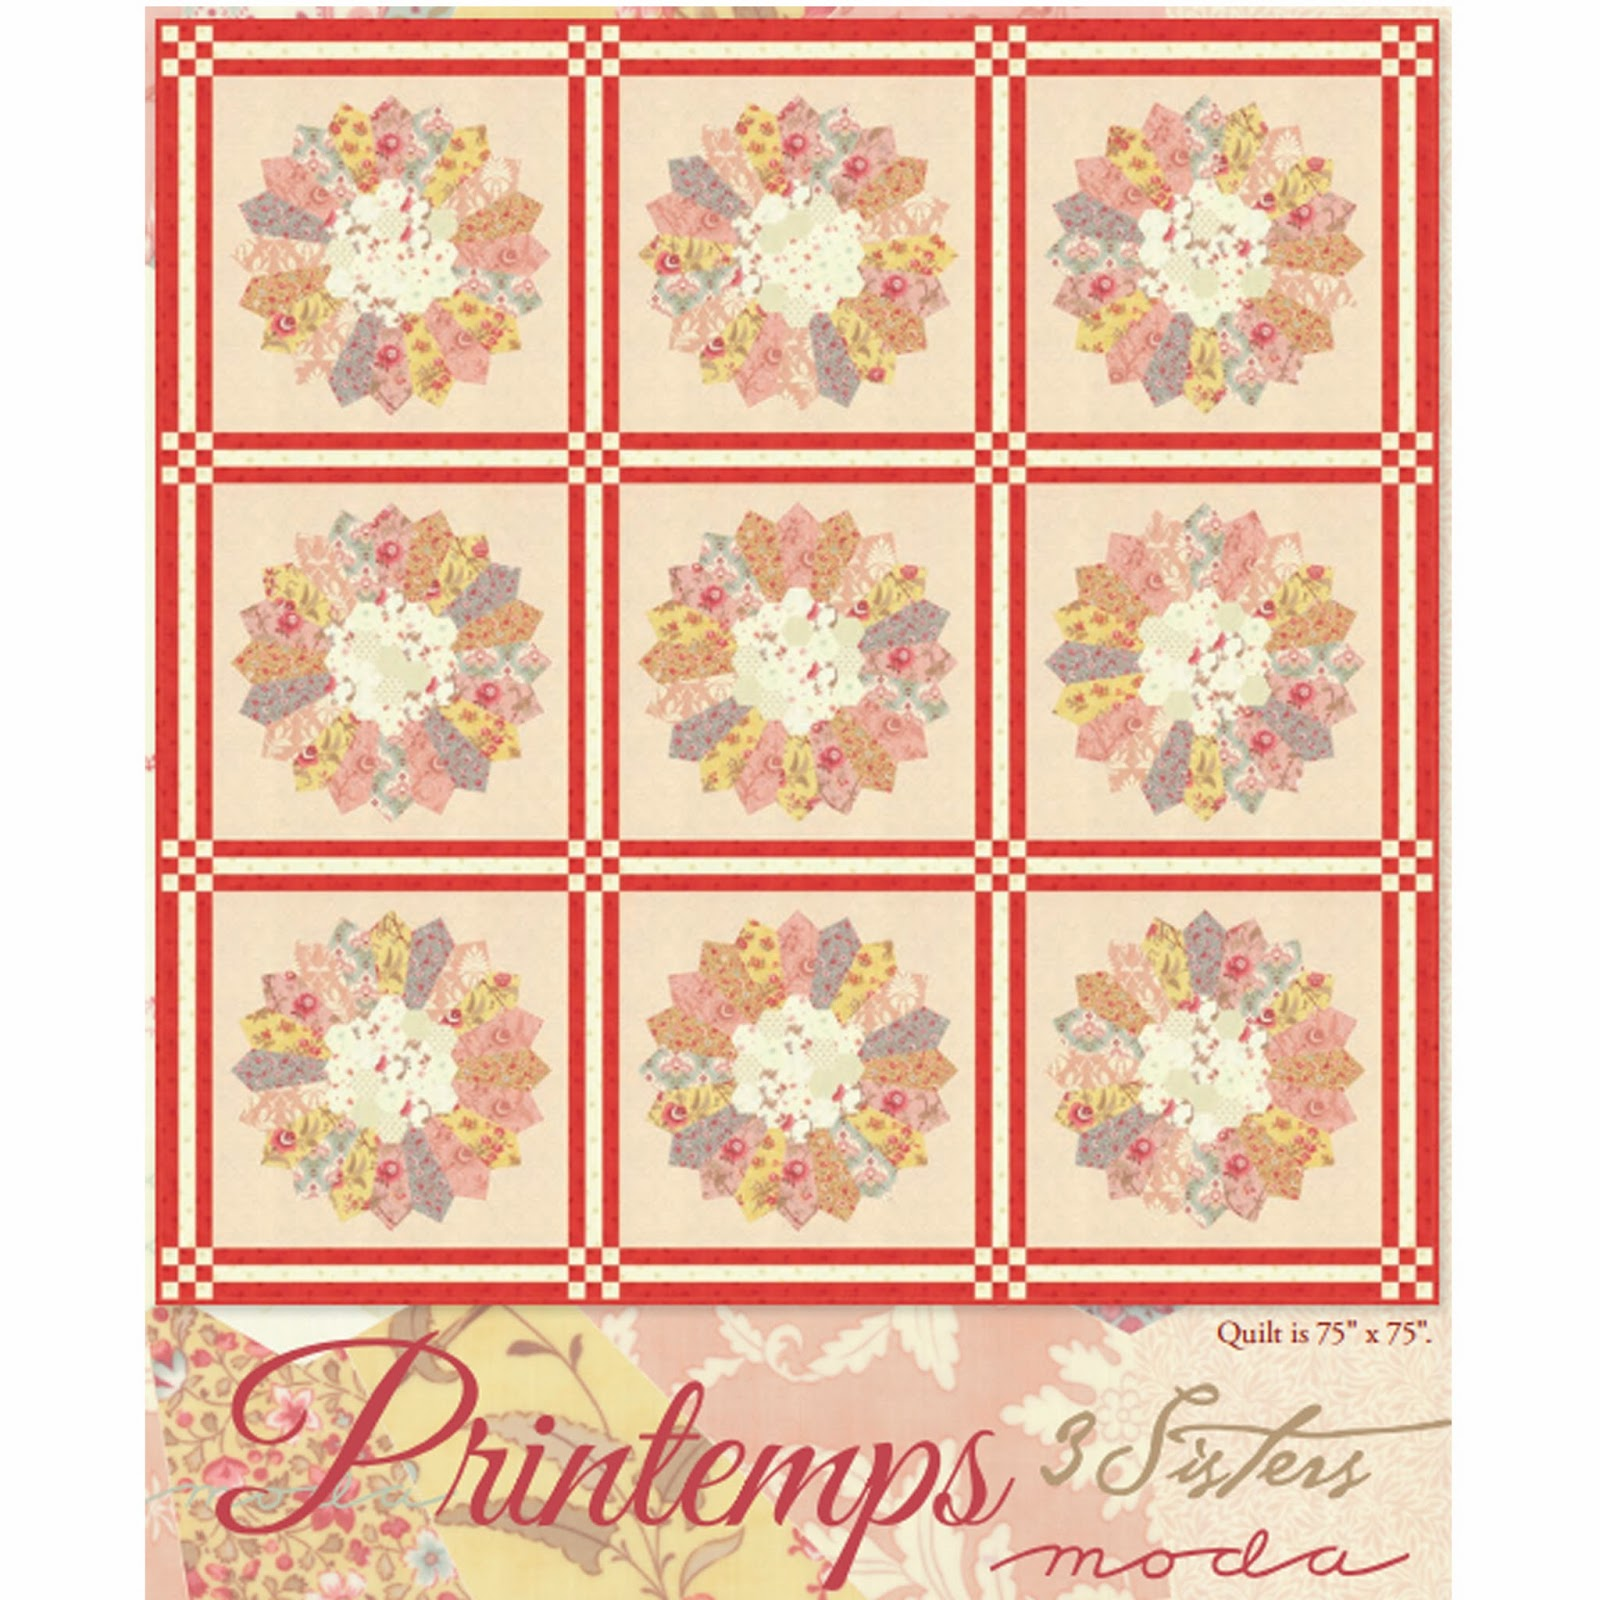 Moda PRINTEMPS Fabric Free Quilt Pattern